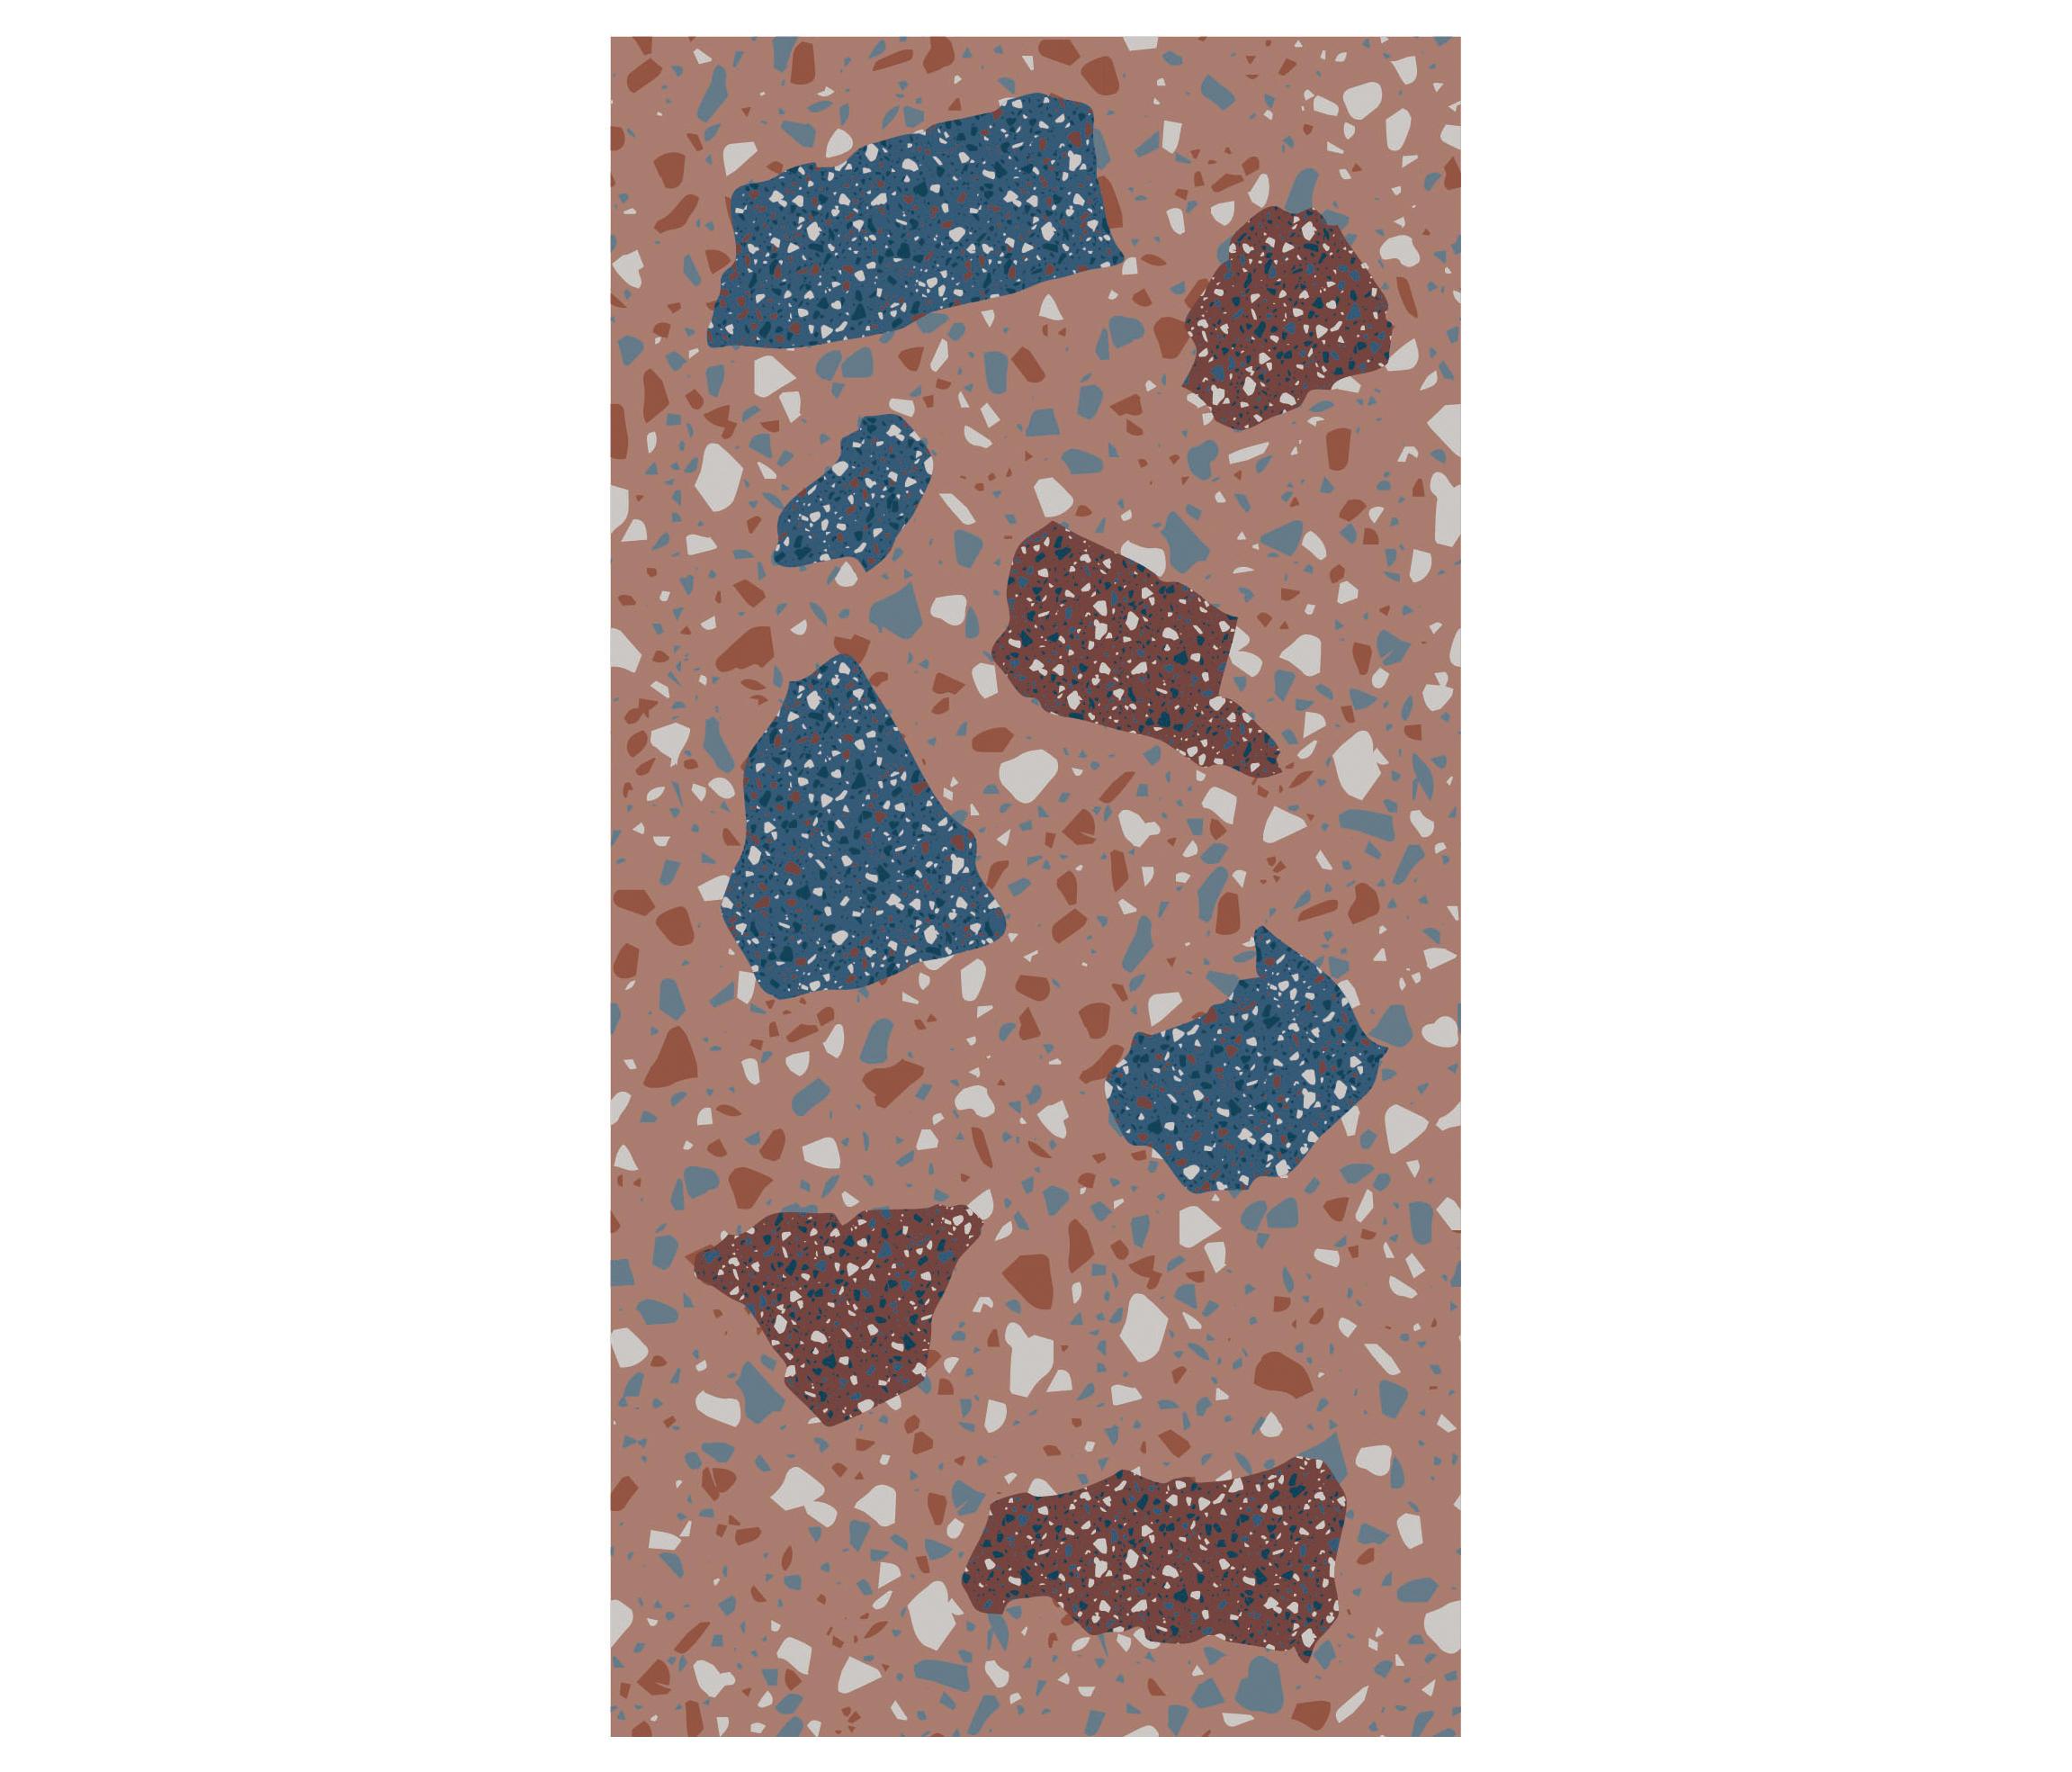 TERRAZZO EARTH | OP120240TEE - Ceramic tiles from Ornamenta | Architonic